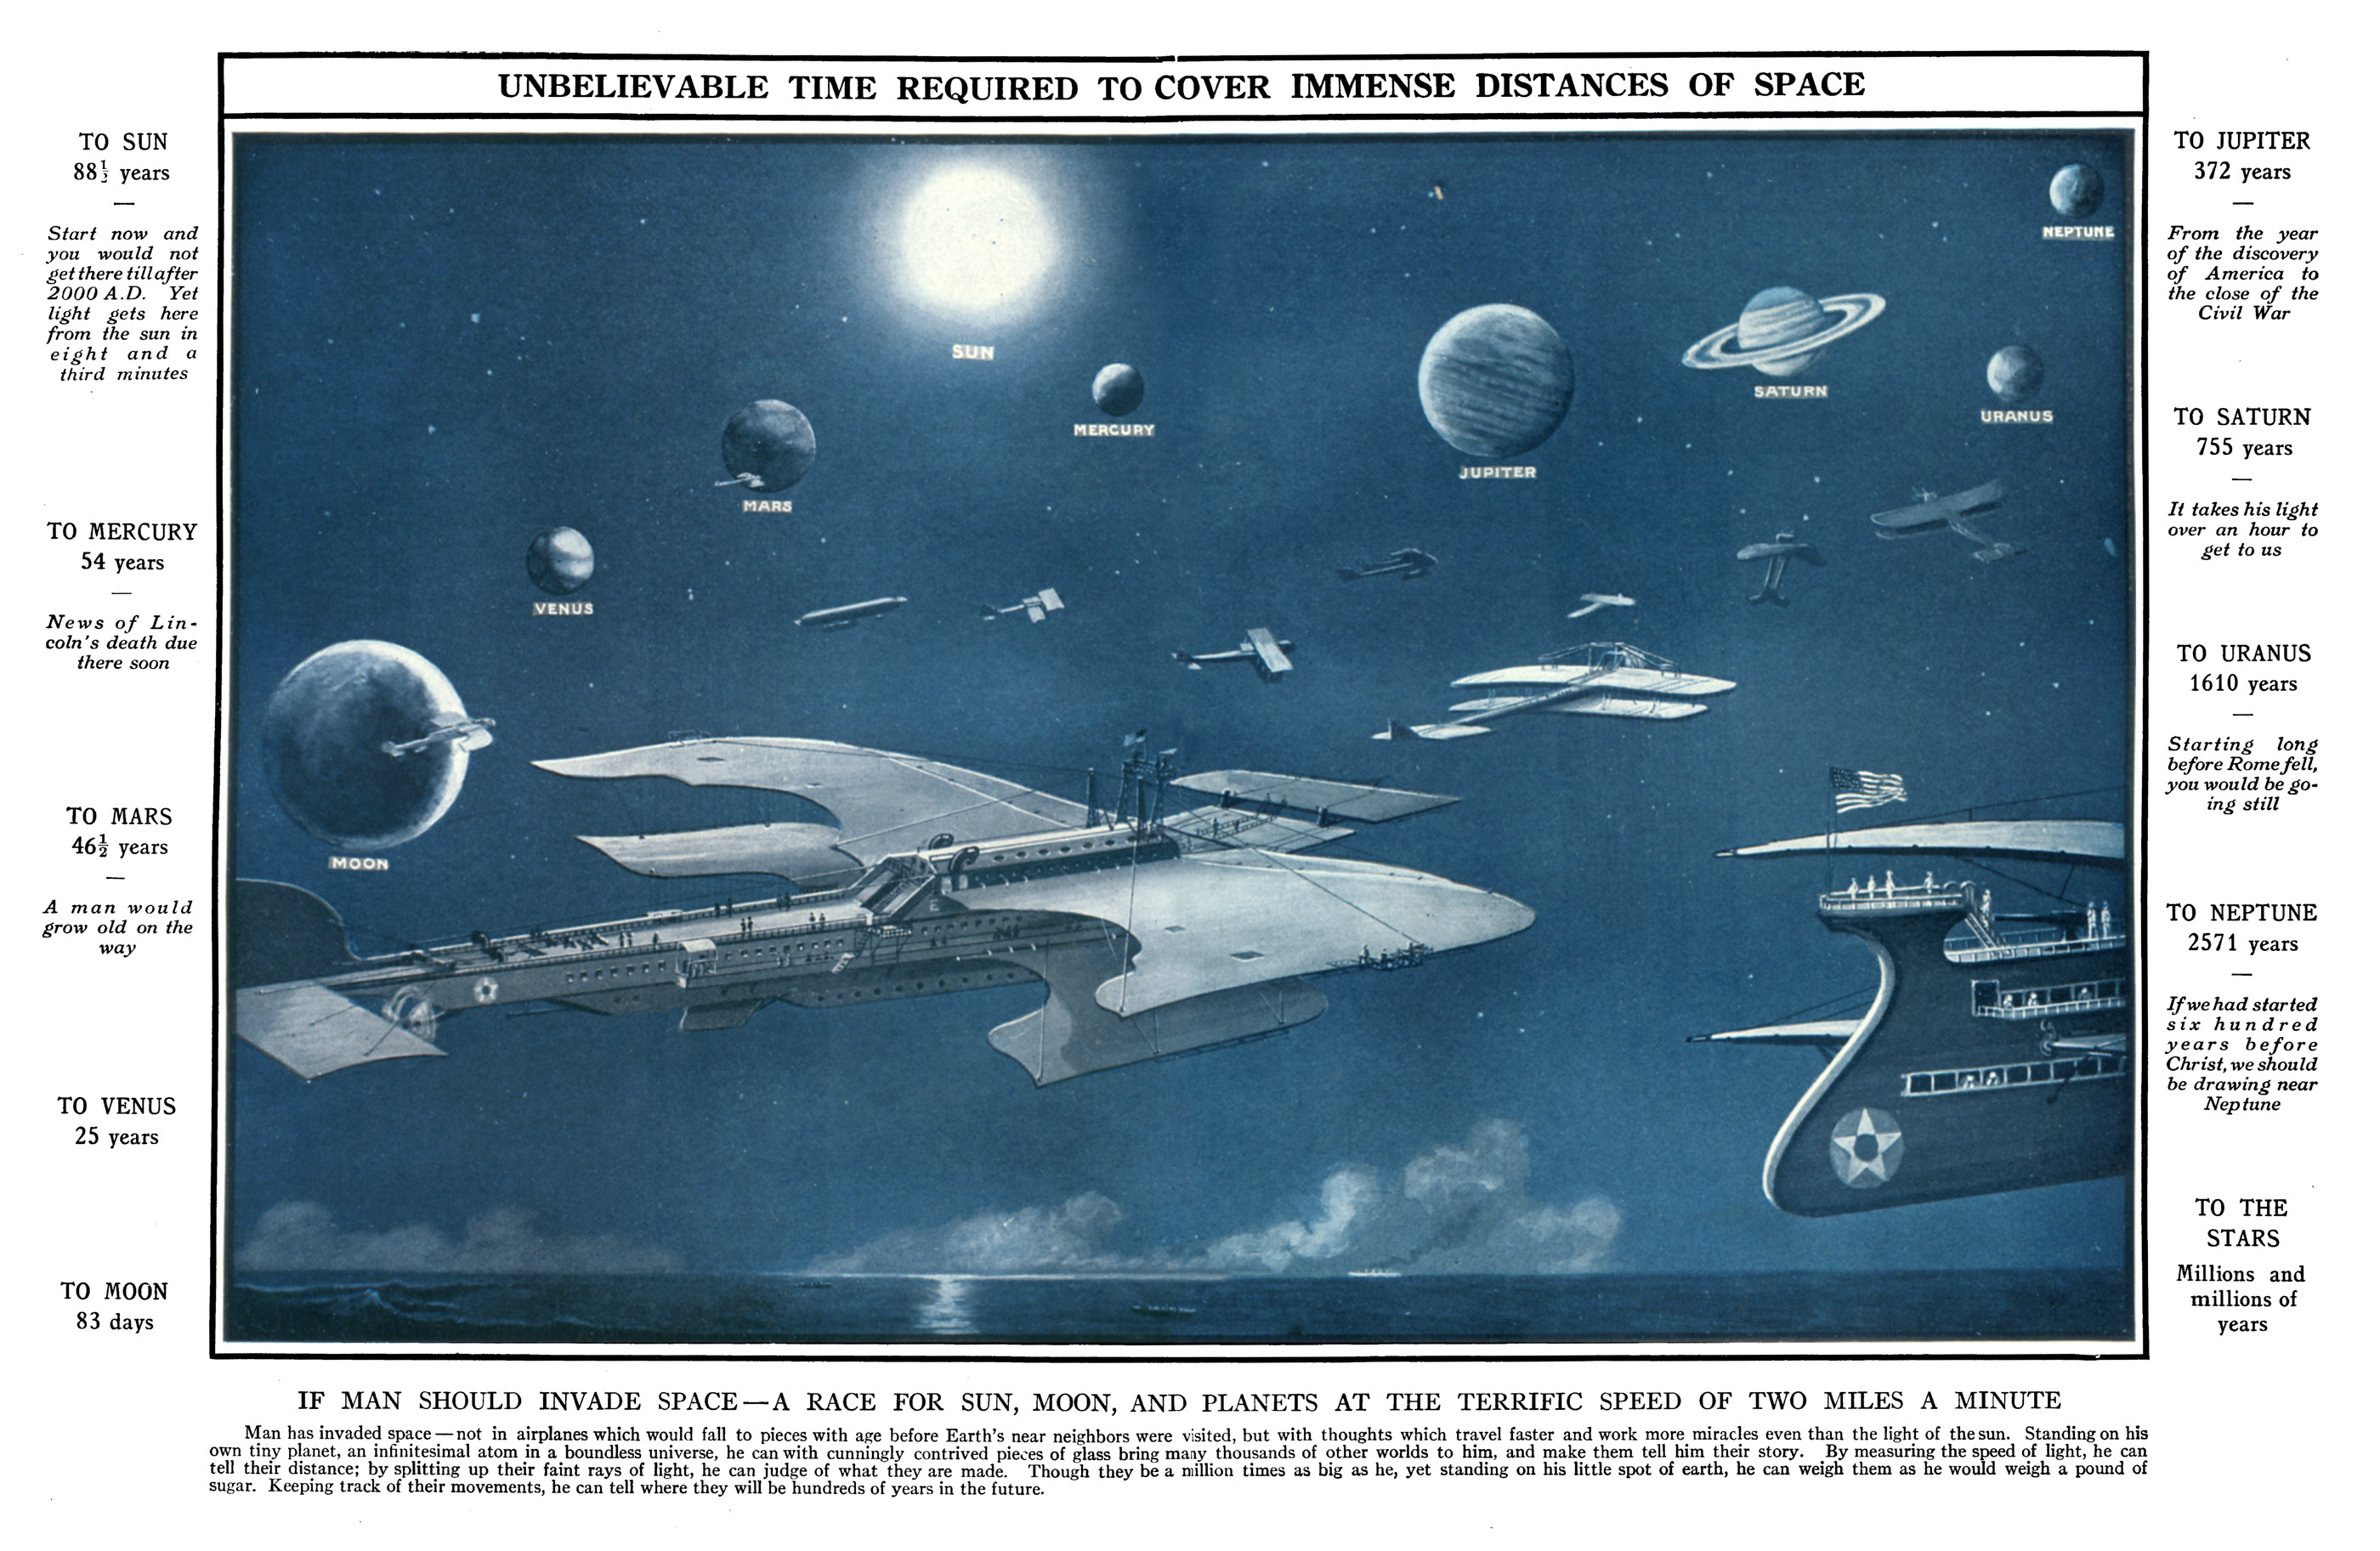 Unbelievable_Time_Required_To_Cover_Immense_Distances_of_Space__1918.jpg.jpg (2800×1825)